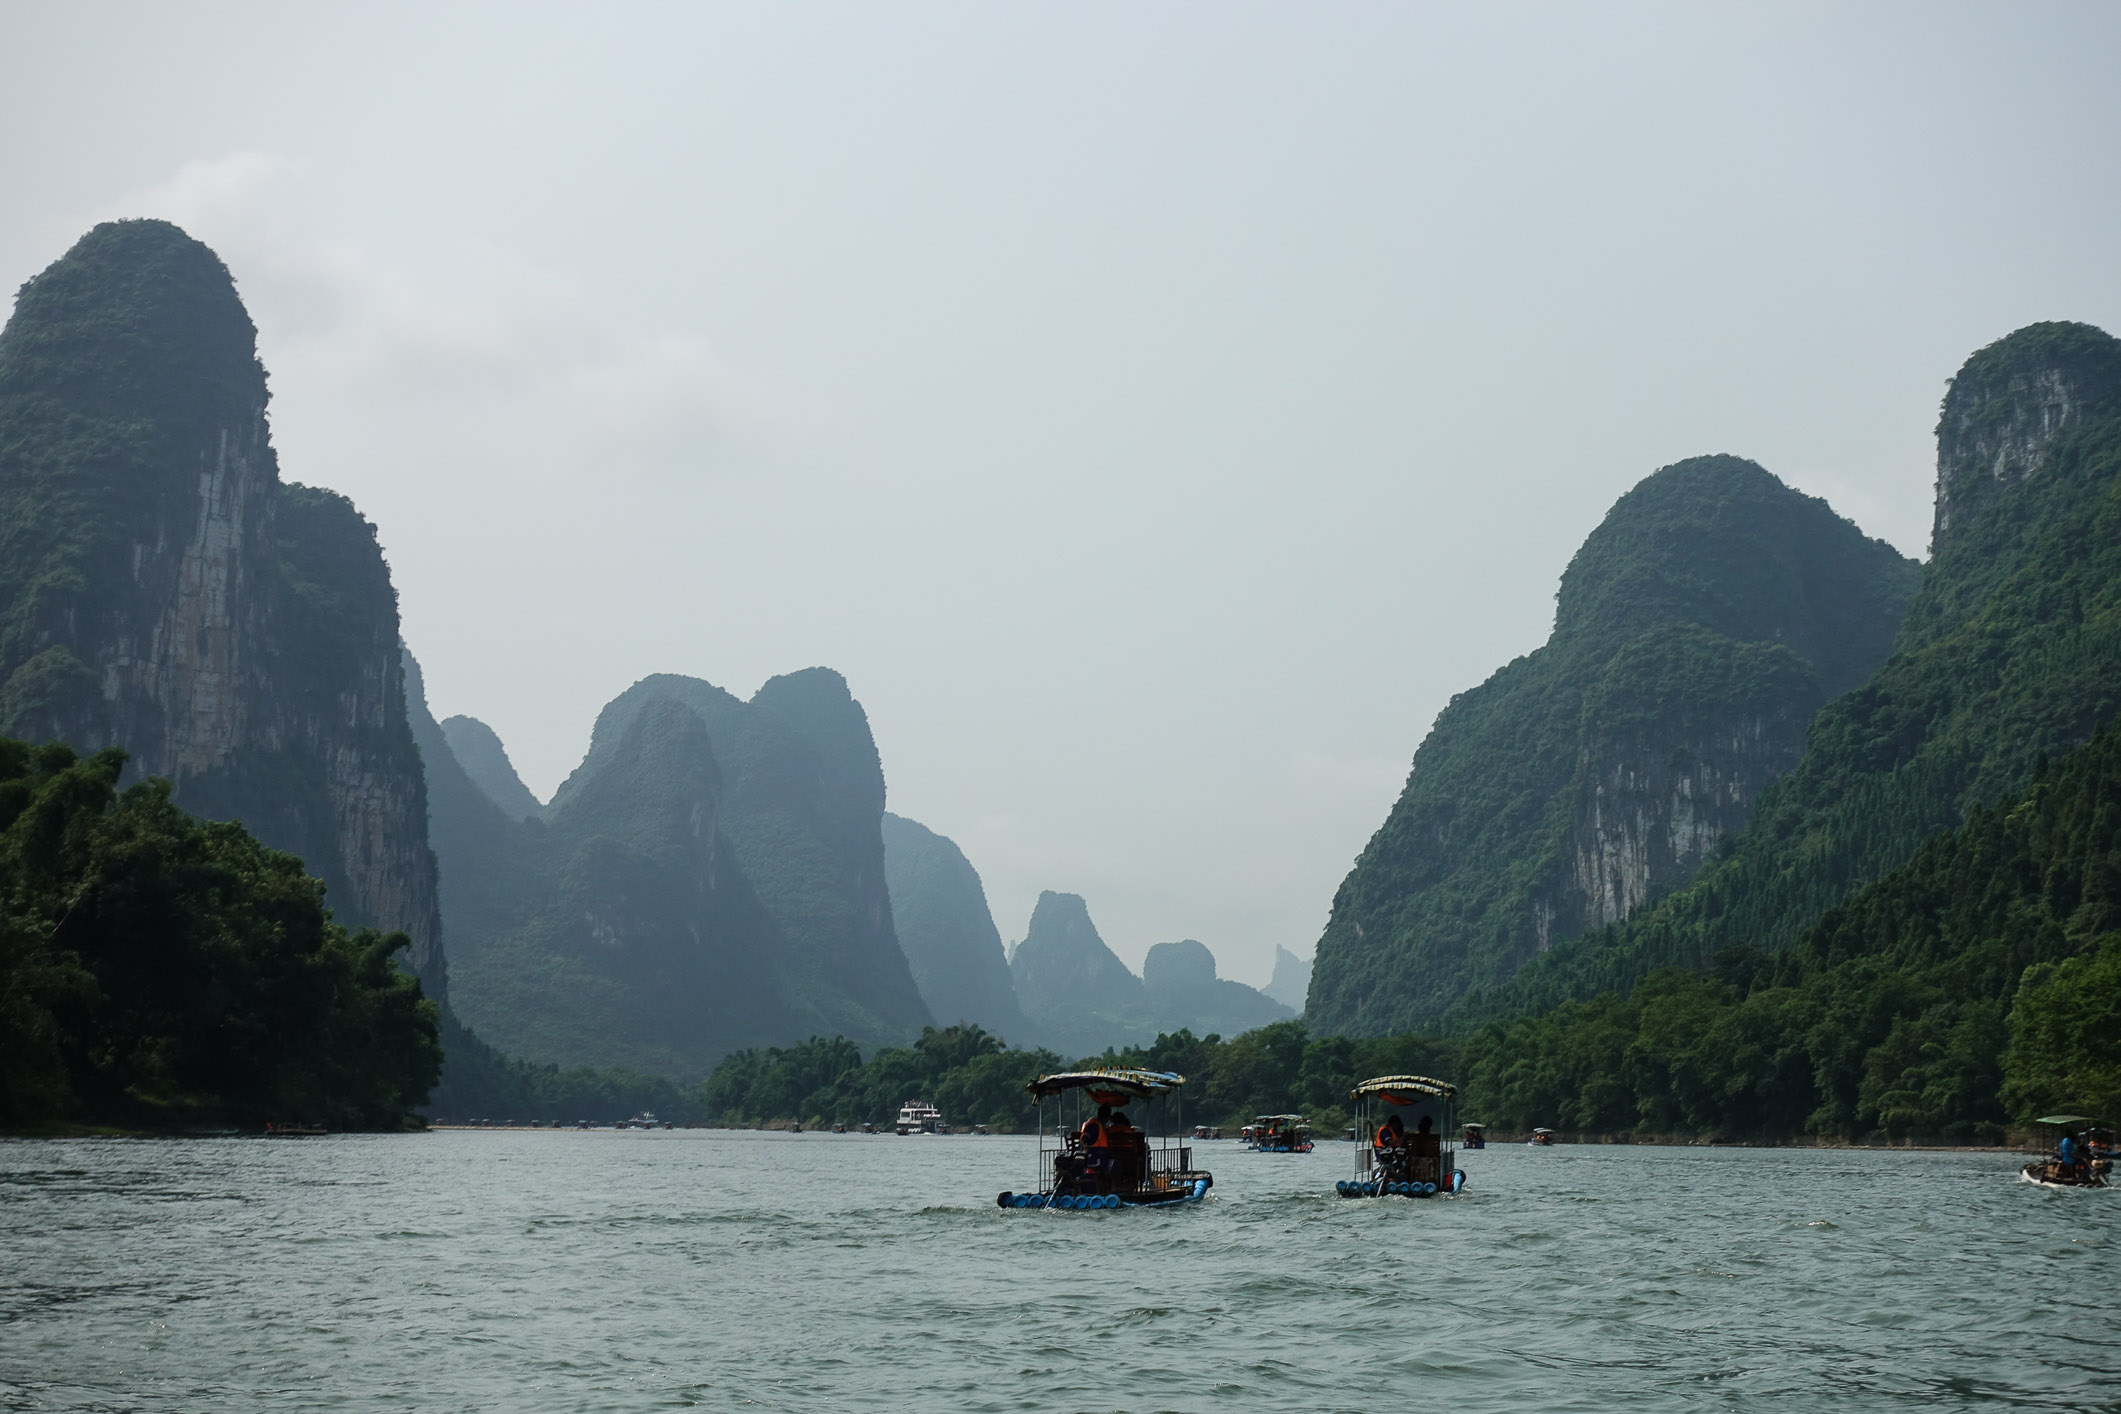 Vies from the Li river